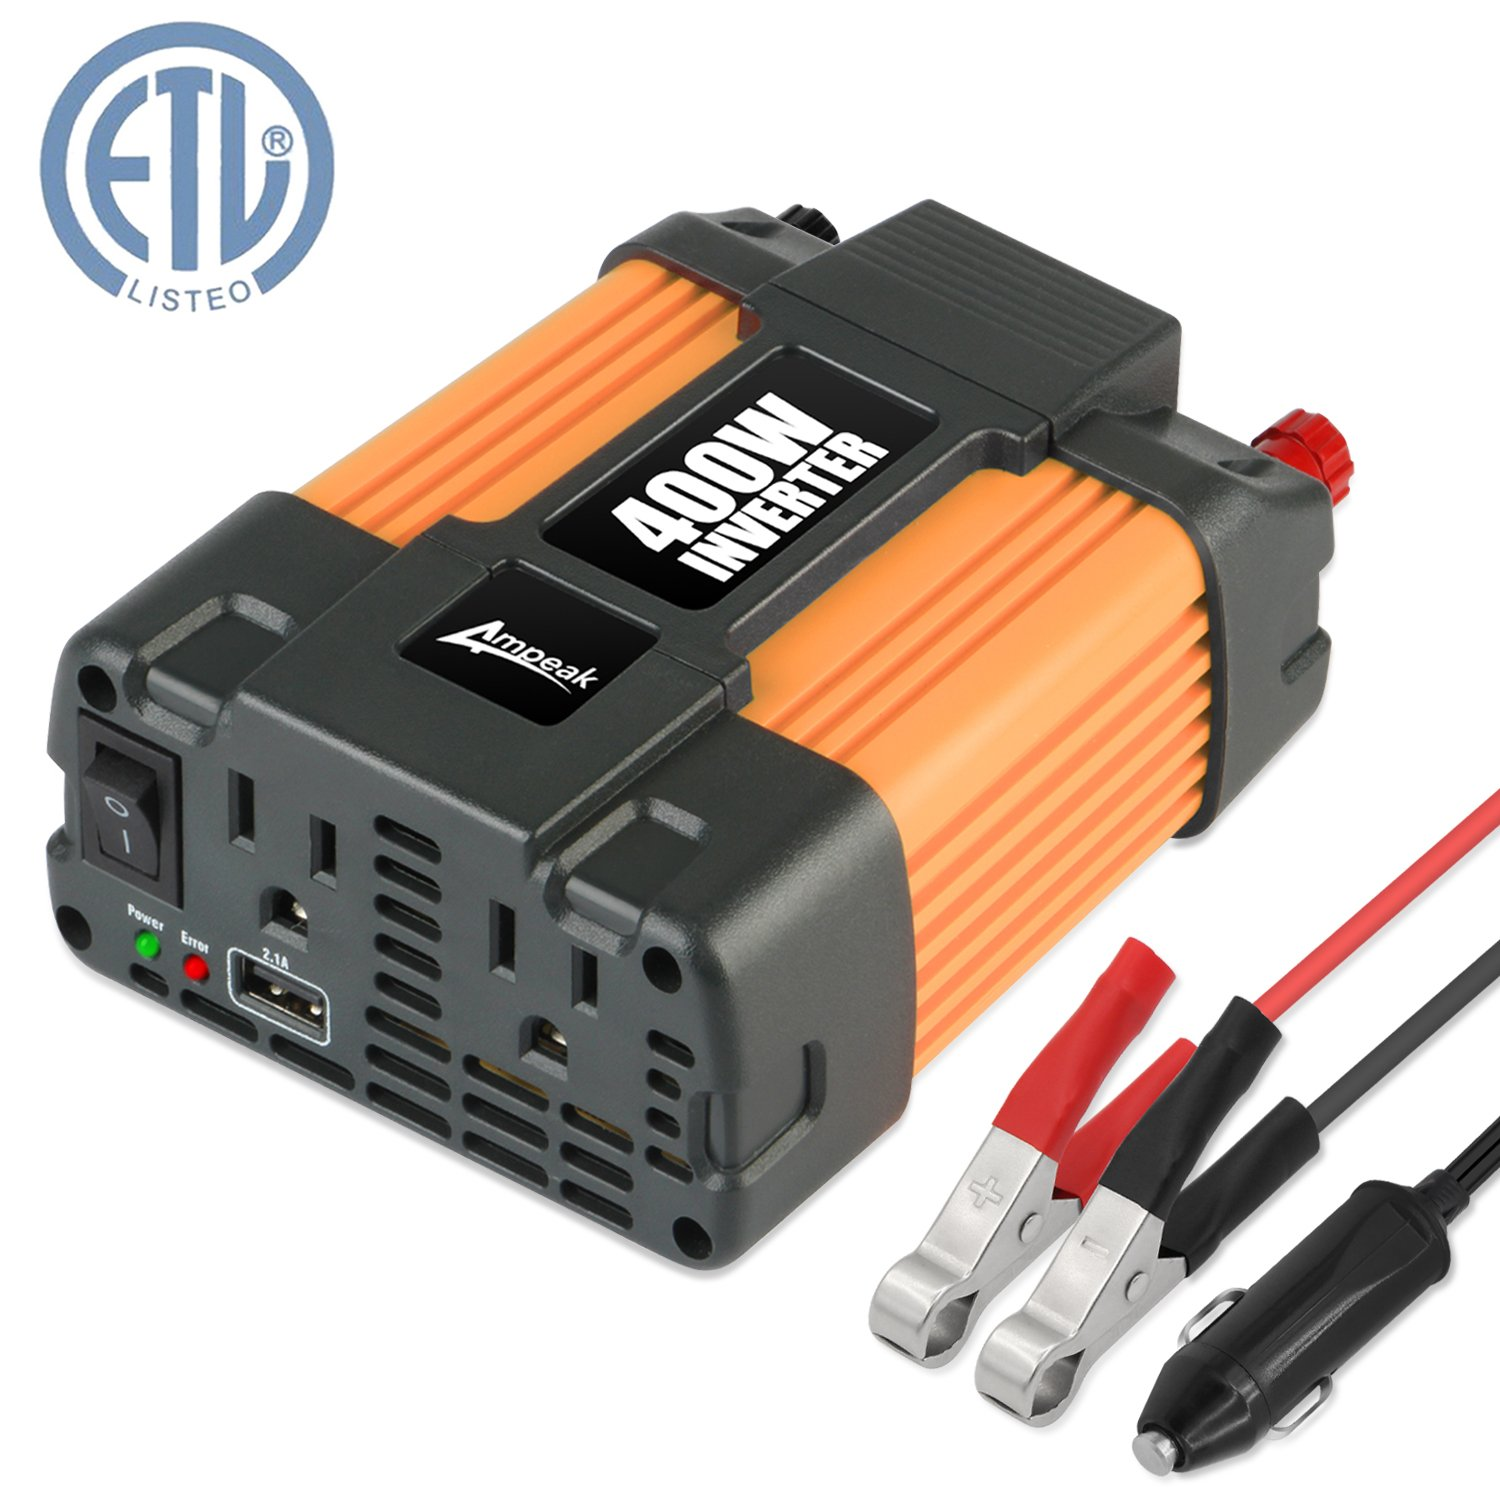 Ampeak 400W Power Inverter DC 12V to 110V AC Car Inverter with 2.1A USB Car Charger